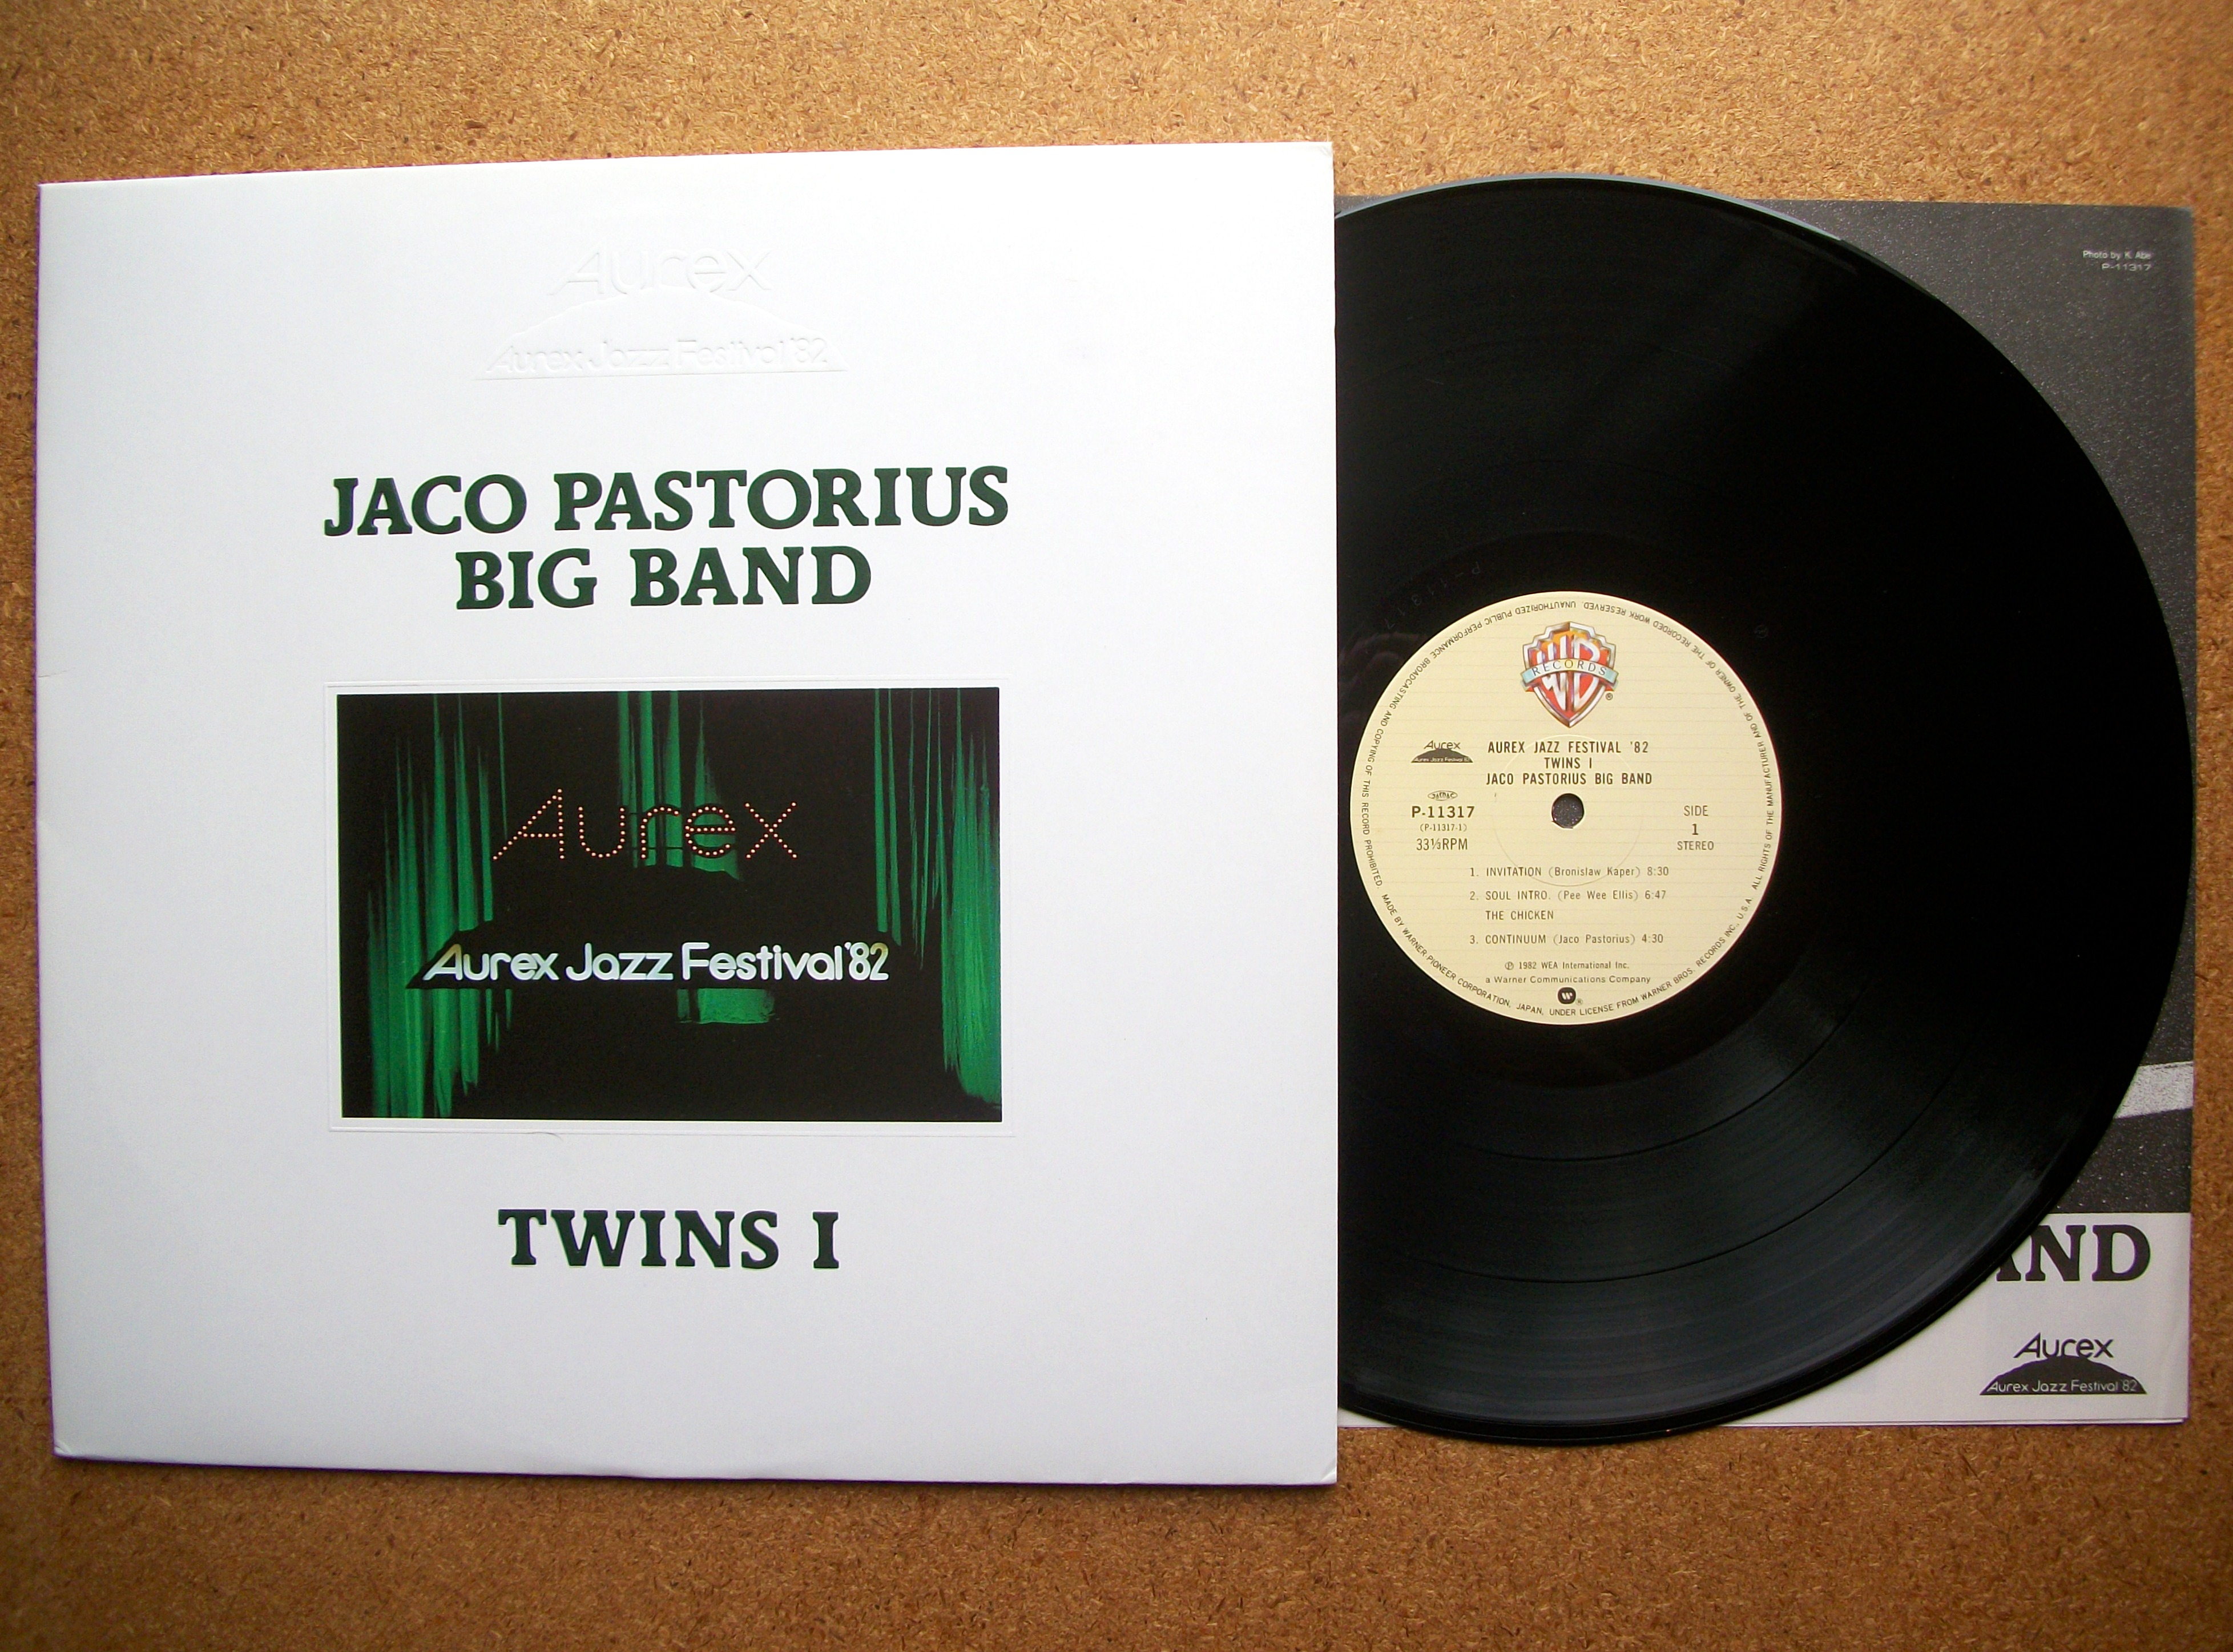 Sinister vinyl collection jaco pastorius big band twins i aurex sinister vinyl collection jaco pastorius big band twins i aurex jazz festival 82 1982 stopboris Image collections